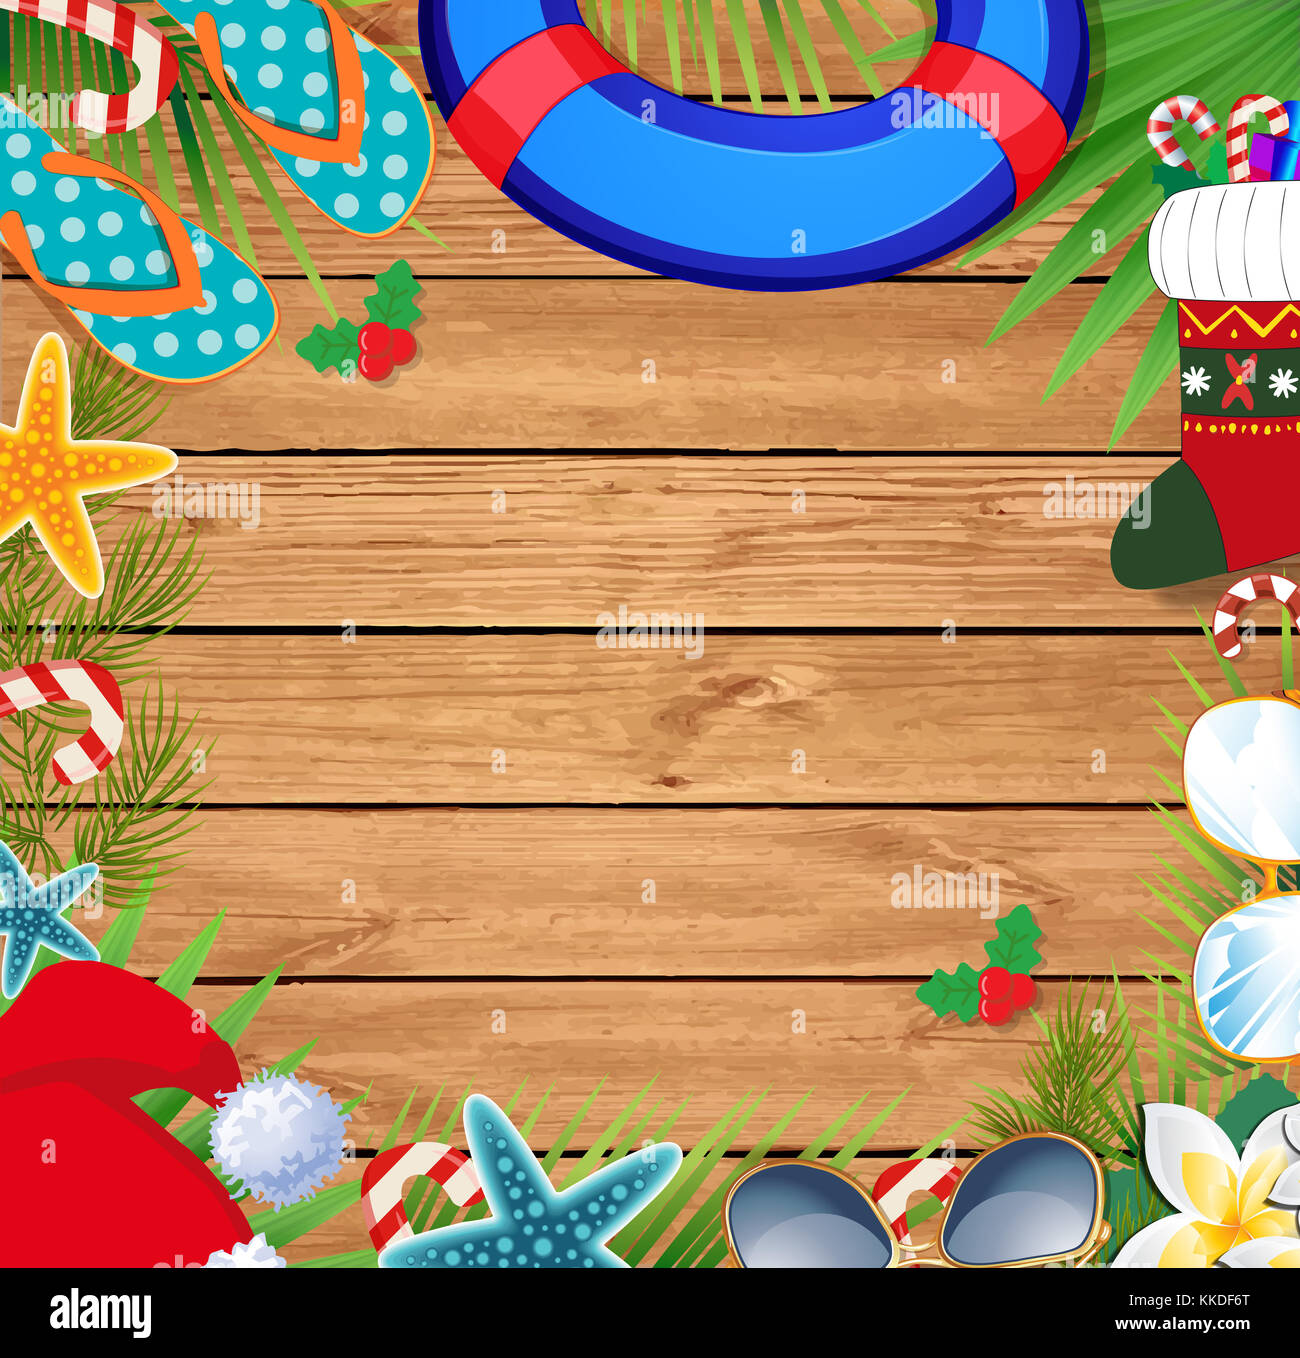 merry christmas and happy new year border on a warm climate design background summer vacation accessories and palm leaves with santa hat on wooden b